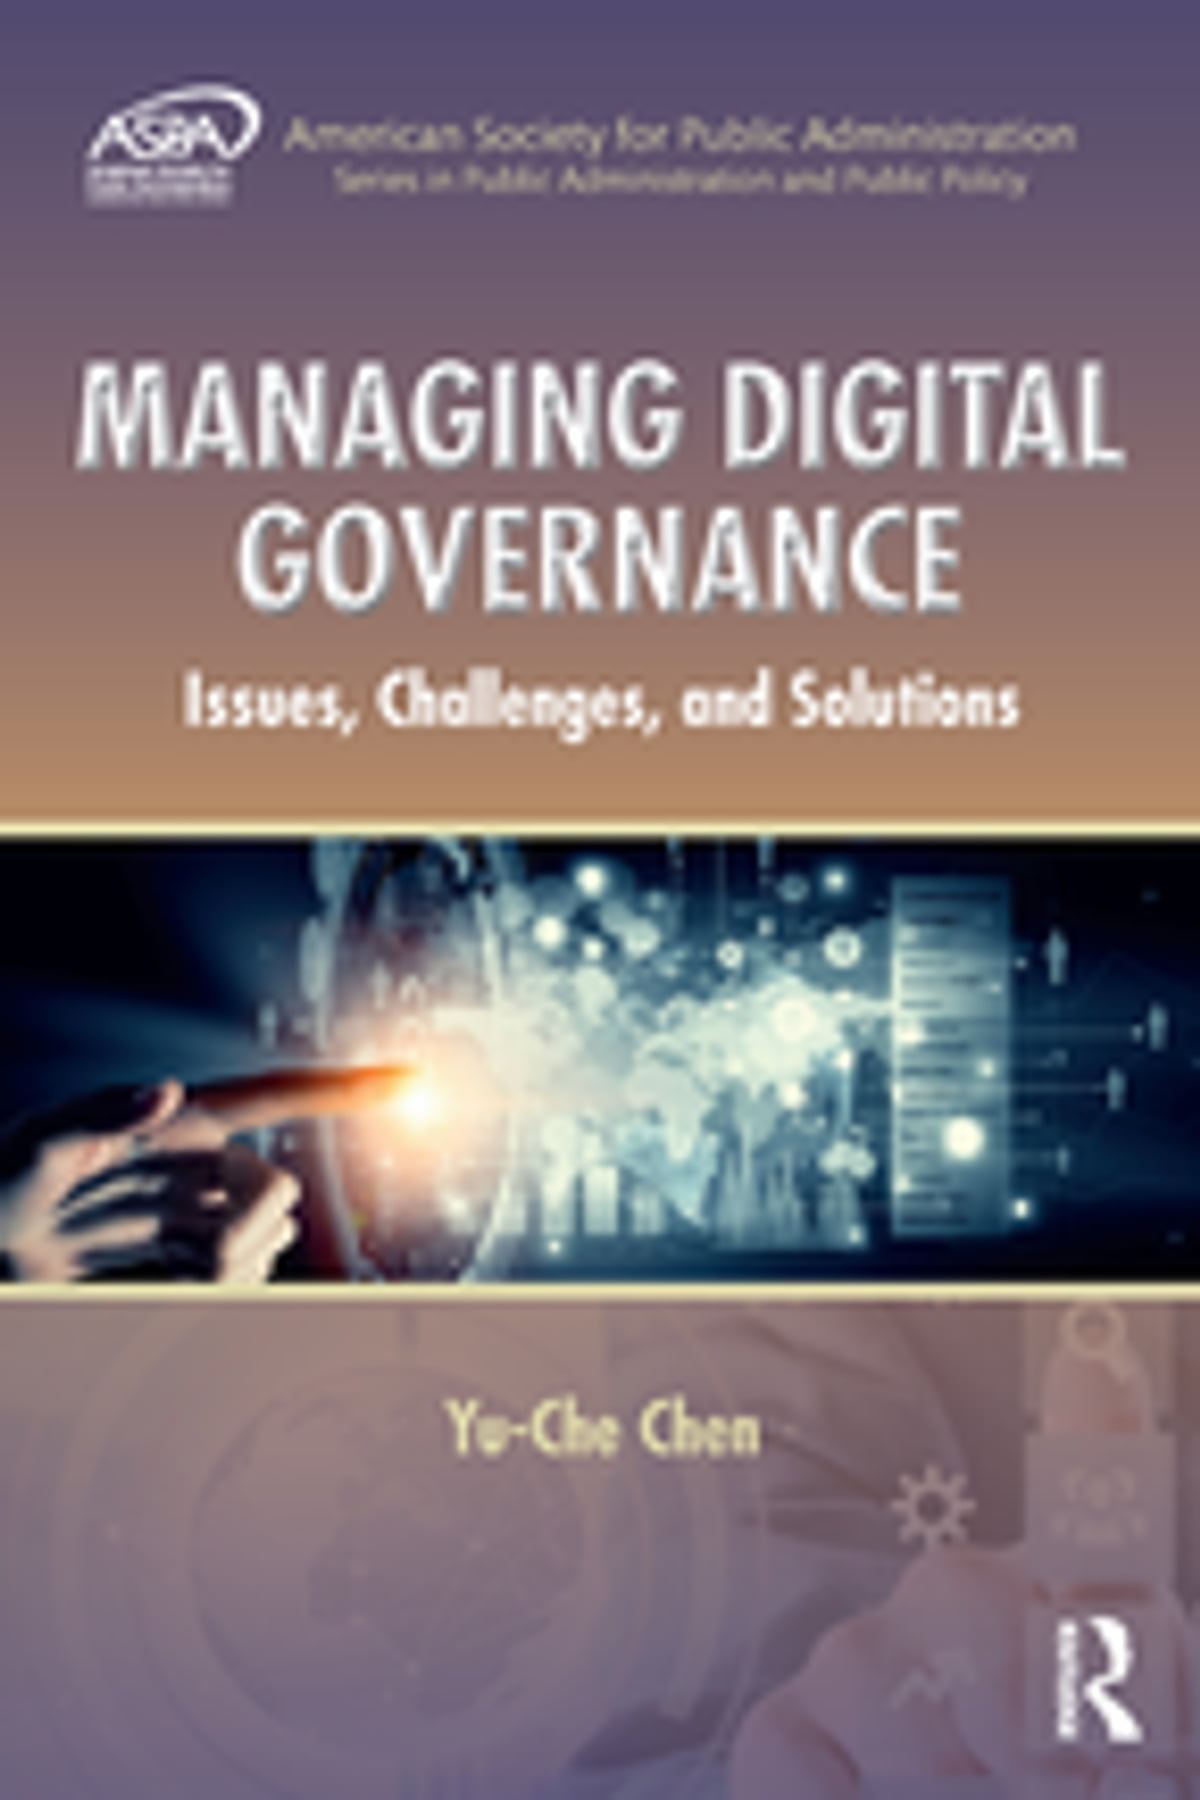 Chen Che Managing Digital Governance Ebook By Yu Che Chen Rakuten Kobo